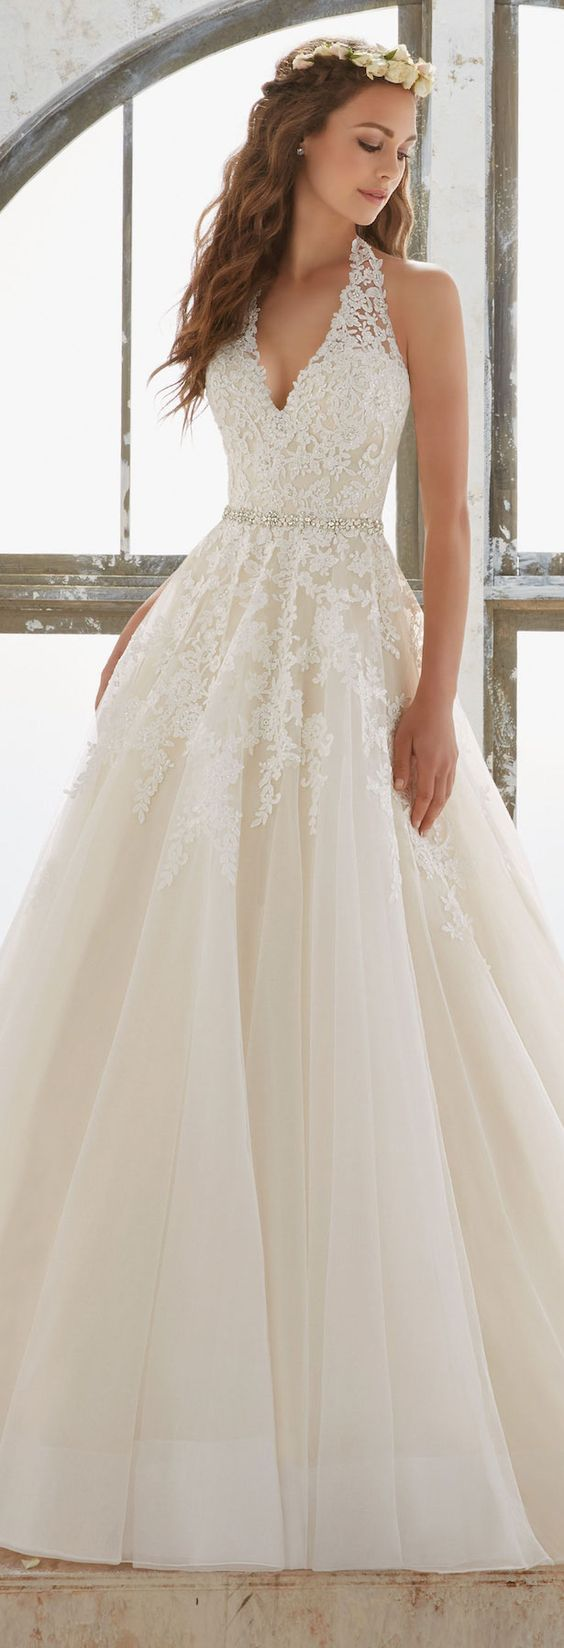 25+ cute Best wedding dresses ideas on Pinterest | Best wedding ...